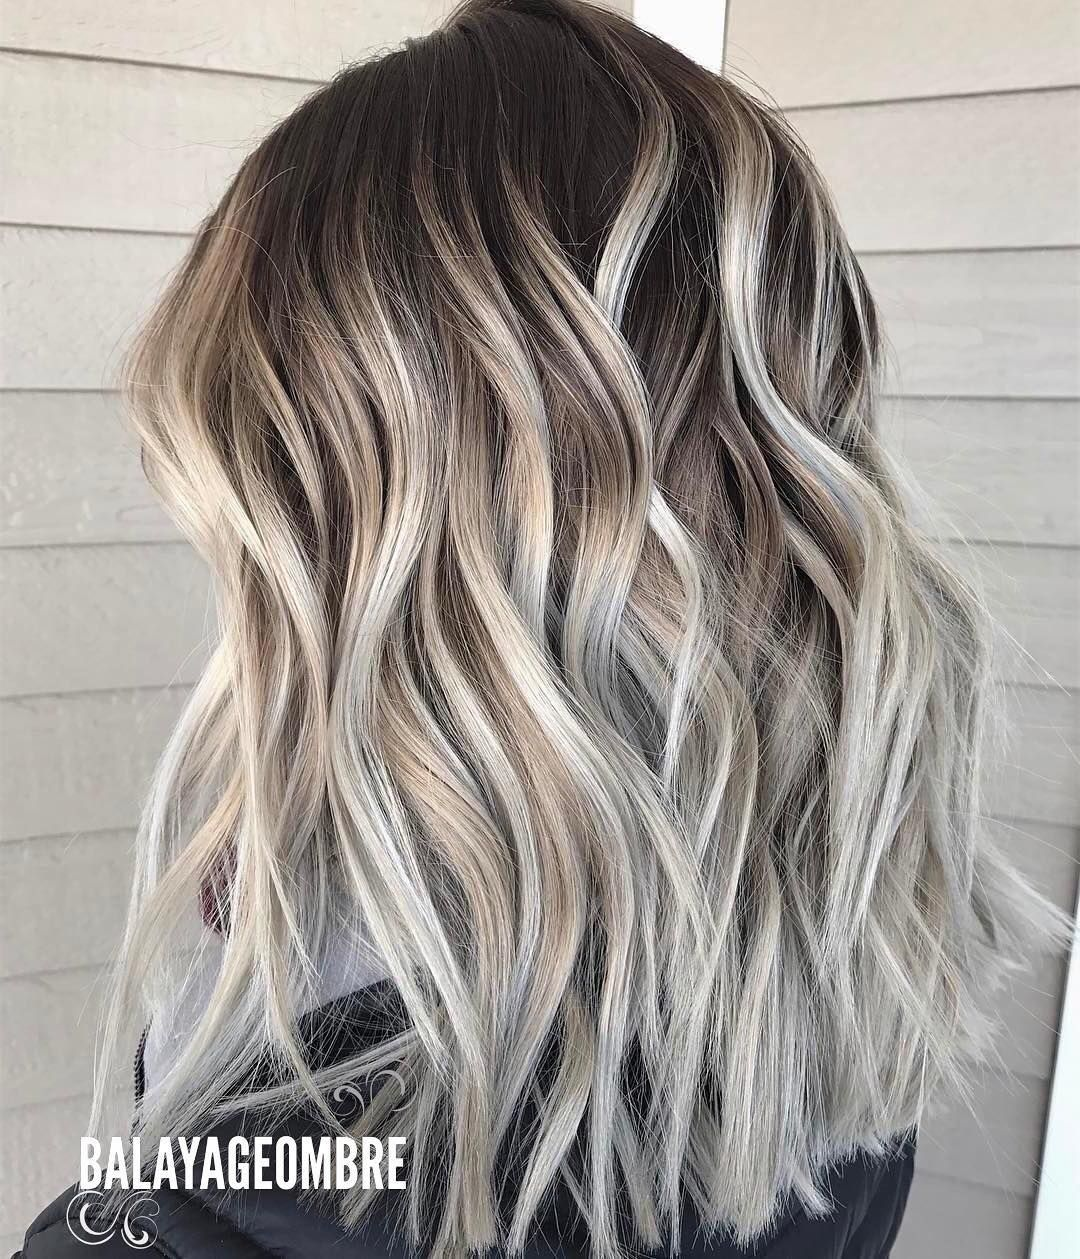 10 Best Medium Layered Hairstyles 2020 Brown Ash Blonde Fashion Colors Medium Hair Styles Hair Styles Hair Lengths